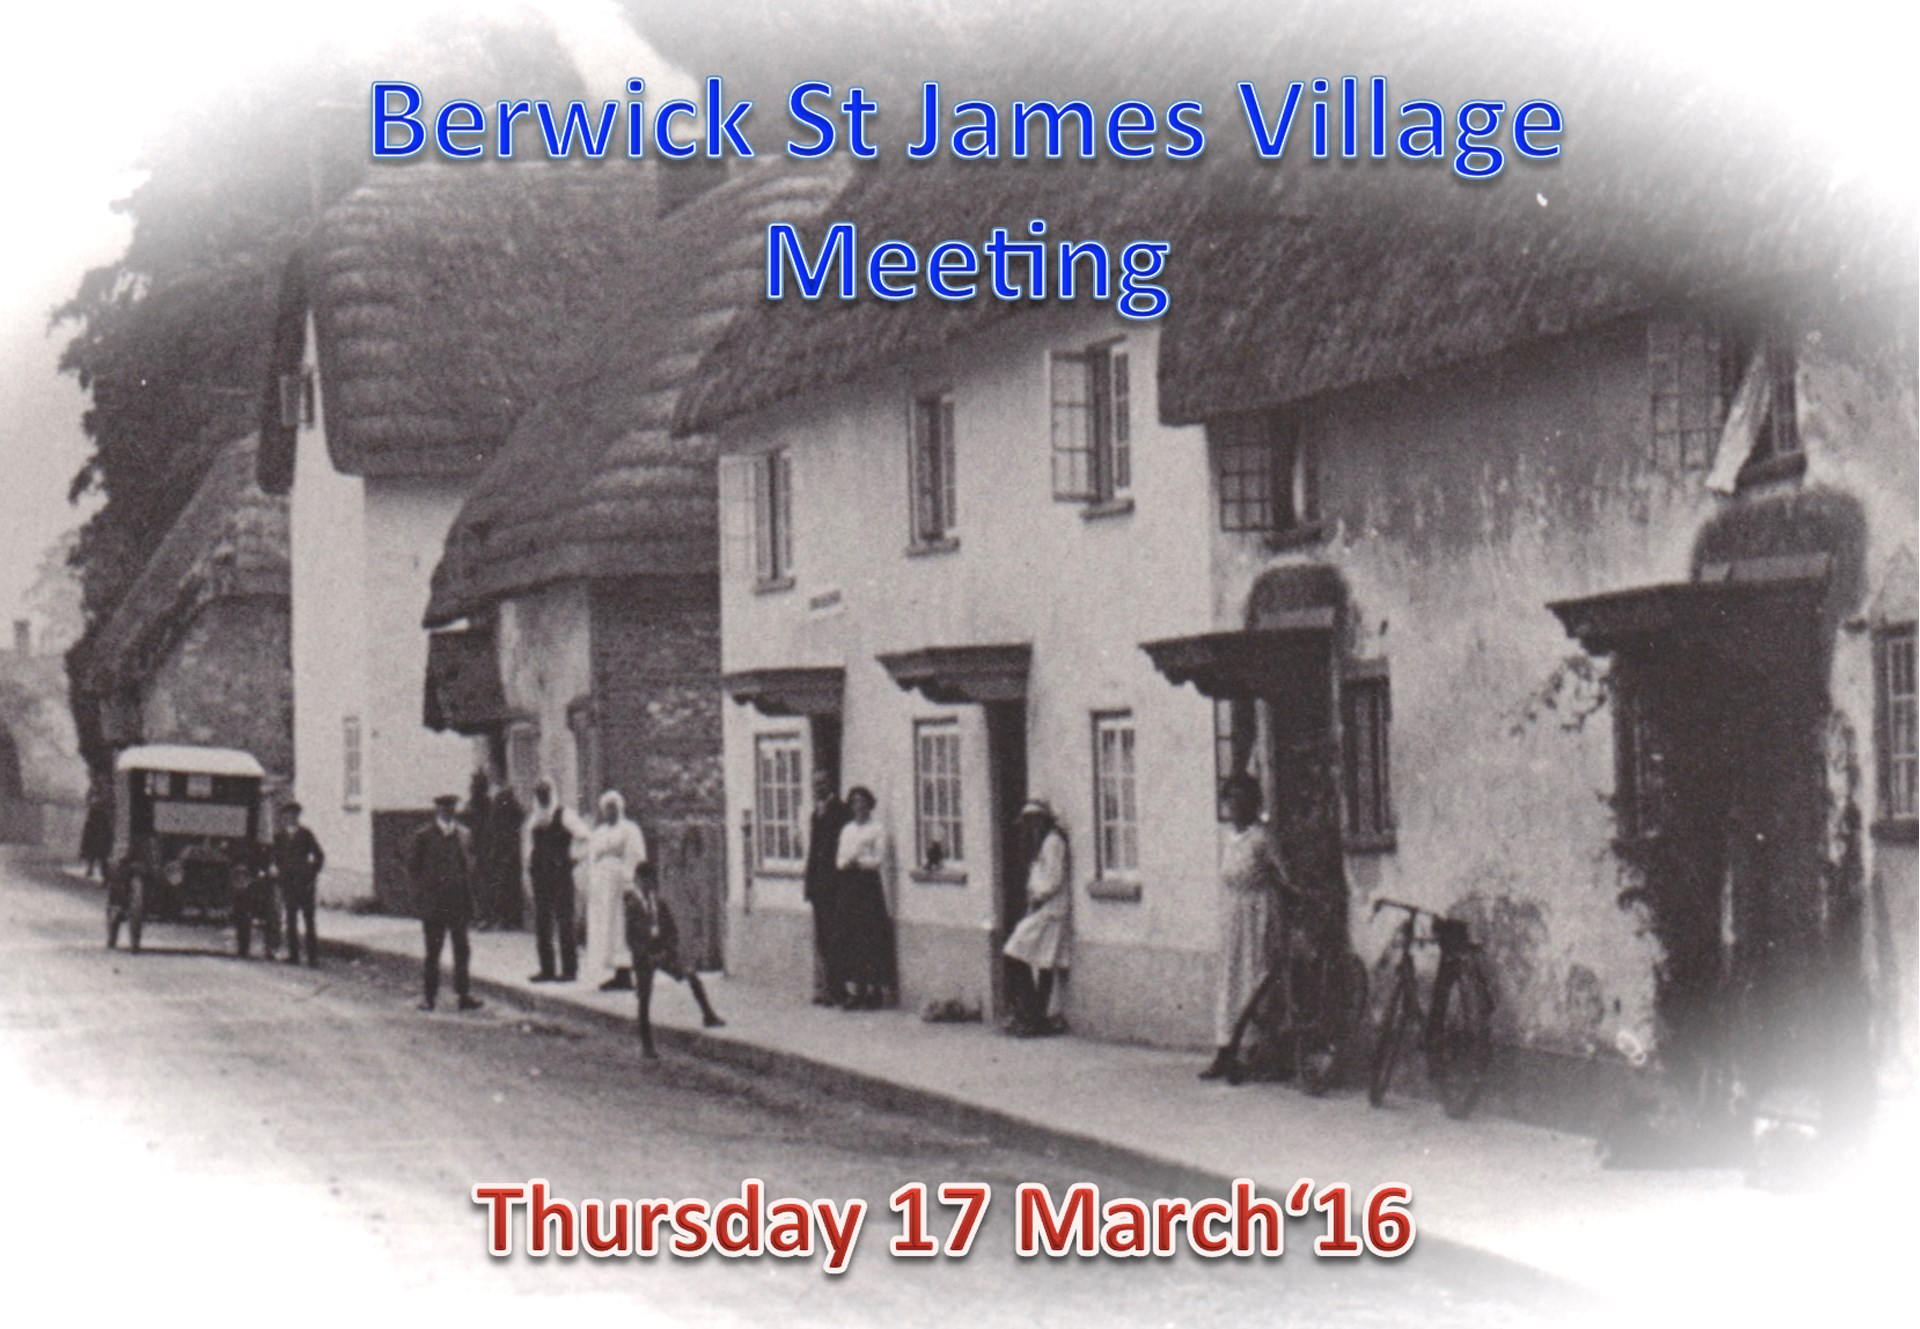 Berwick St James Parish Community 17 March '16